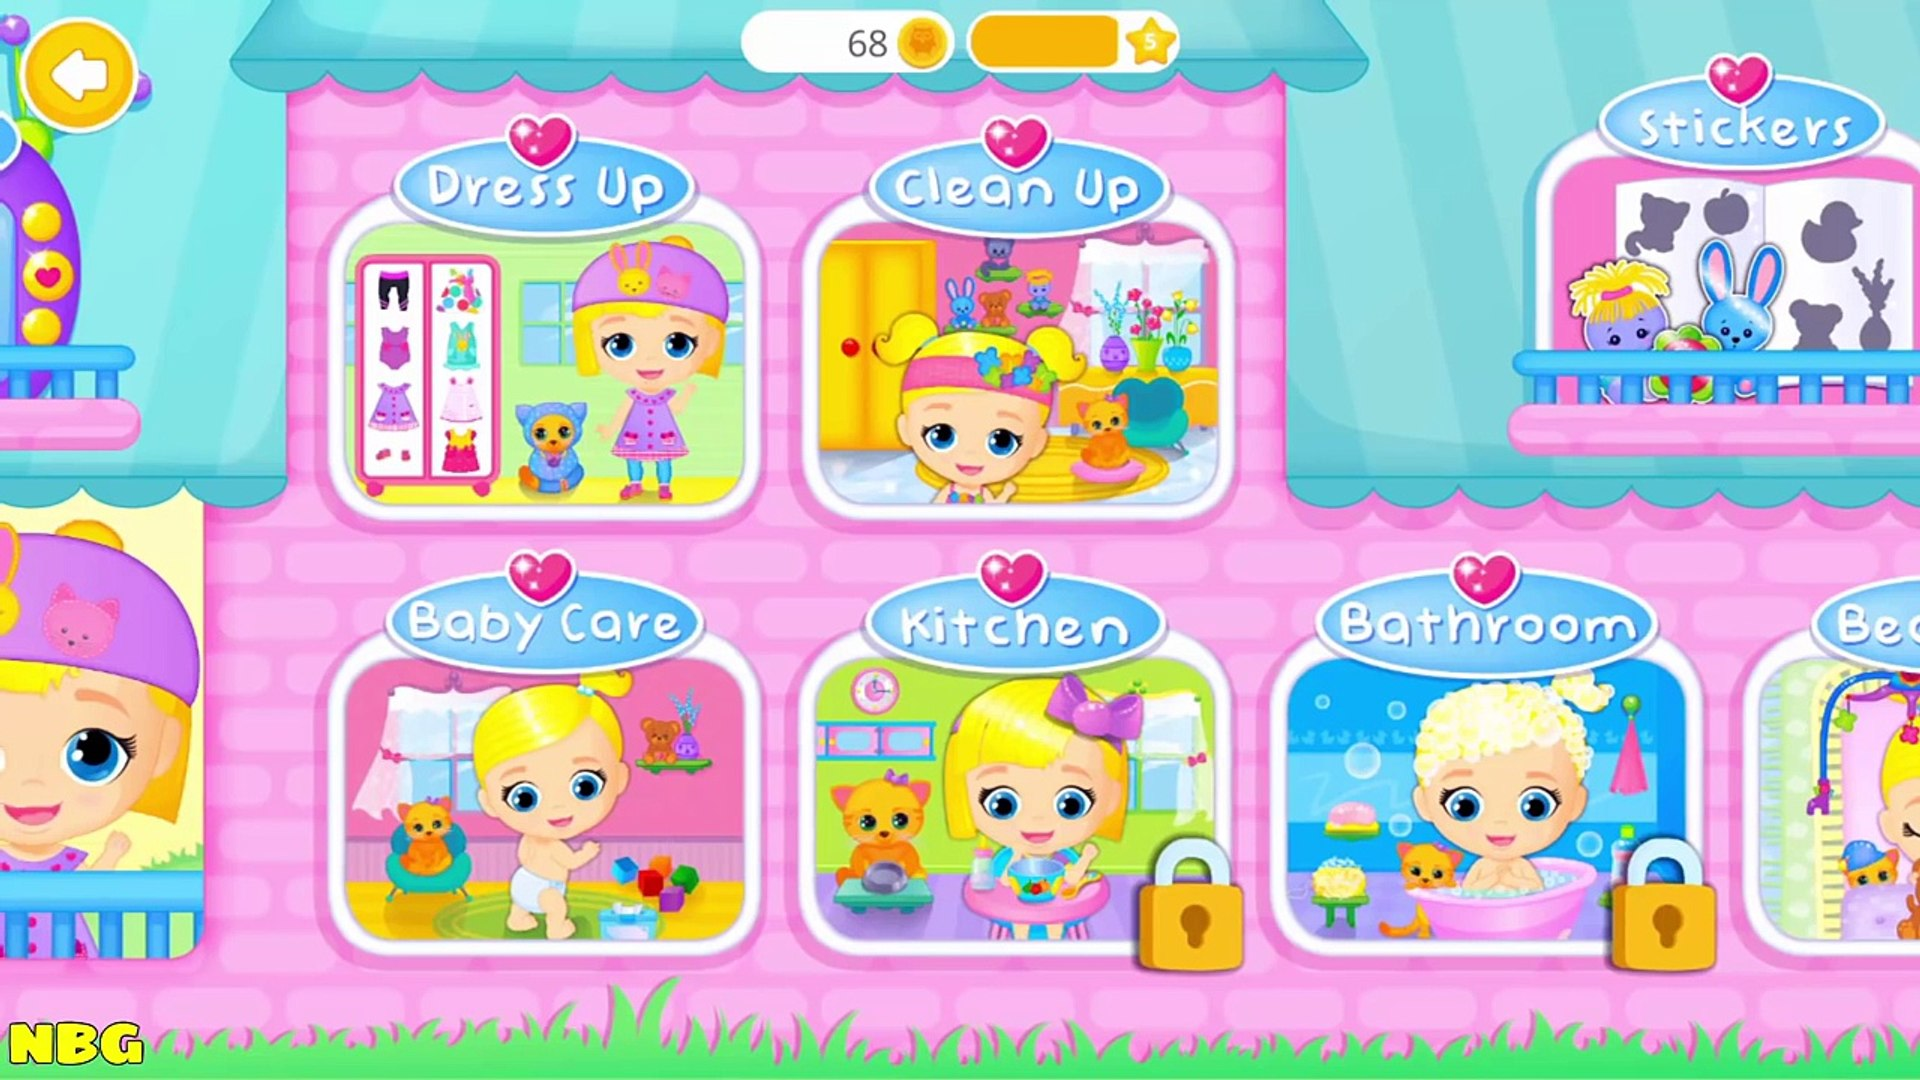 Baby Doll House To Play The Cutest Baby And Pet Care Games For Kids And Toddlers!